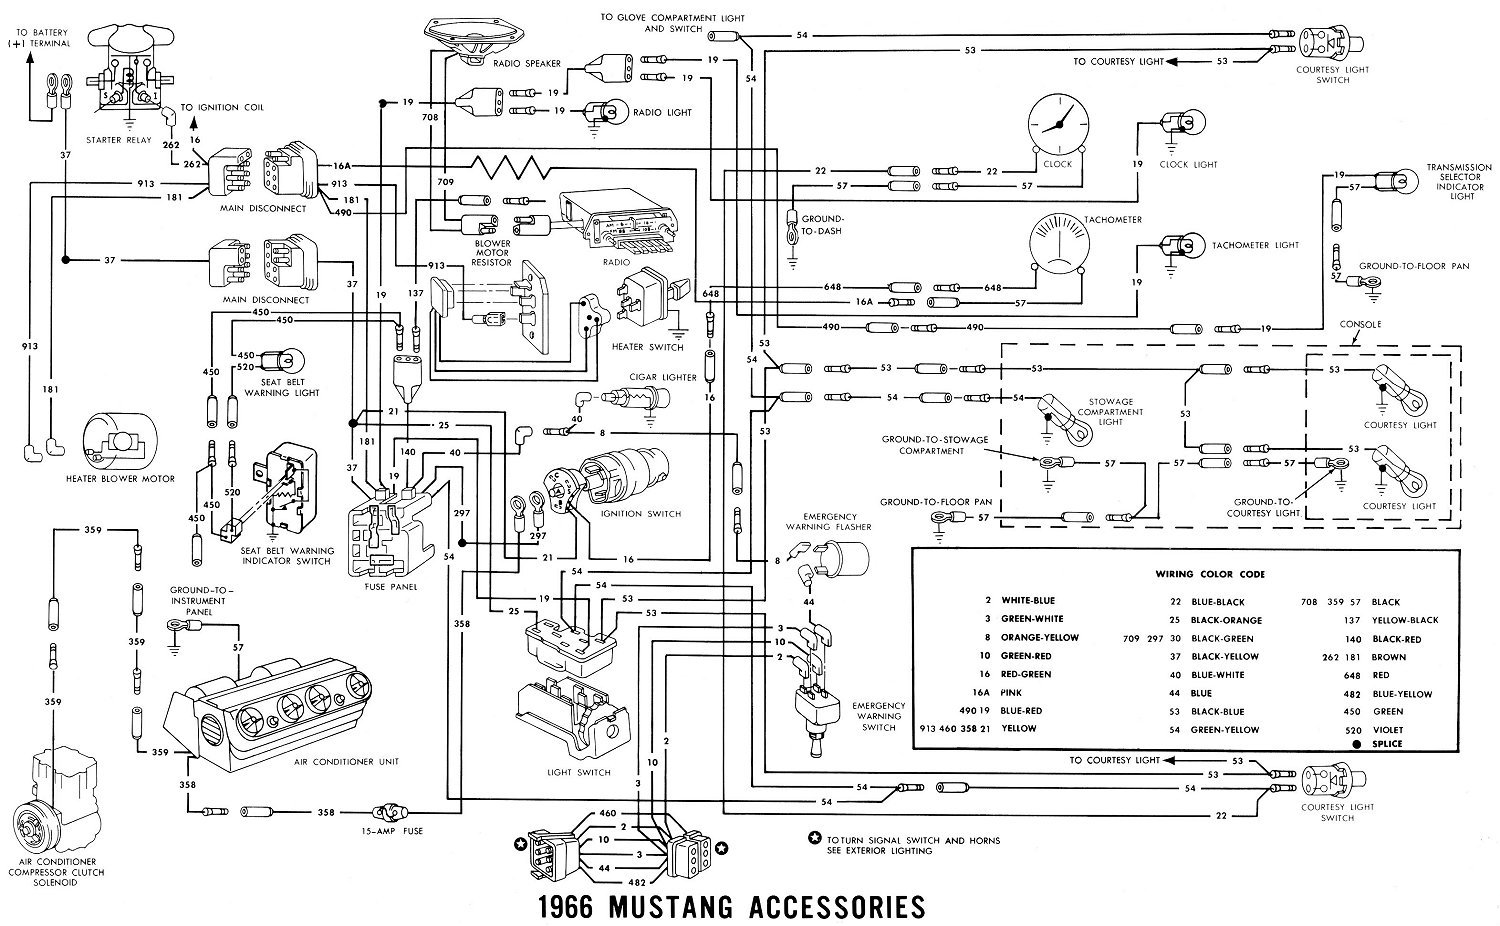 Fender moreover B Bronco likewise D Electrical Woes Alternator Conversion additionally D Coupe Replace Fuse Panel W Blade Type Fuse Blocks Fuse Box Back Side W Scribbles furthermore Tbirdwiringdiagramright. on 1967 ford f100 wiring diagram